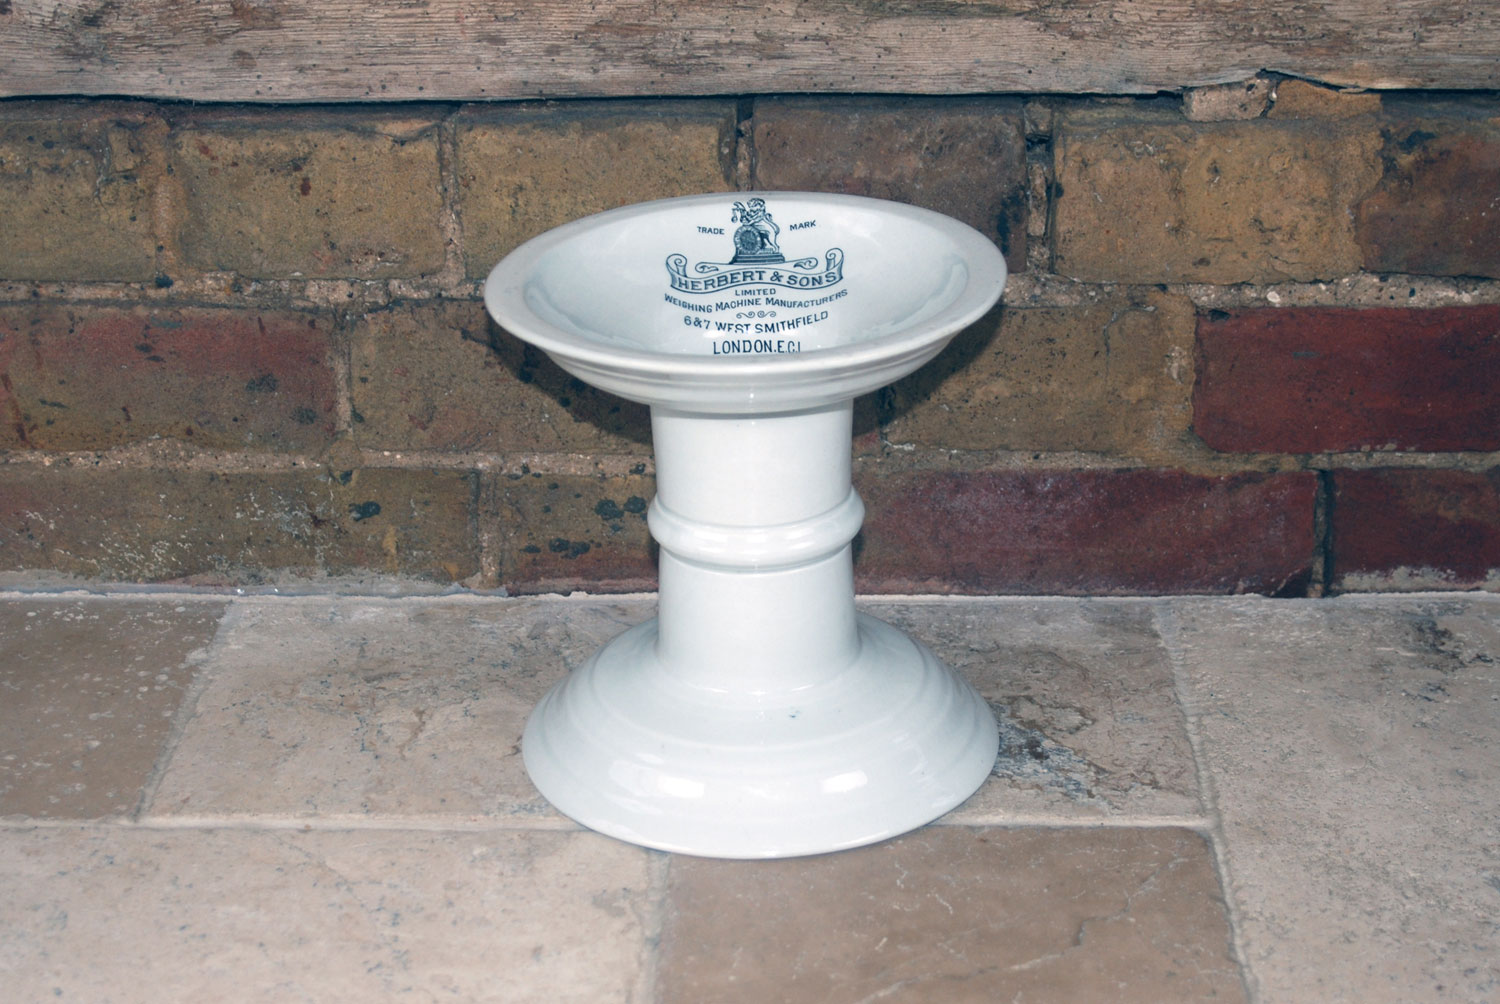 edwardian white ironstone ham stand black transfer print justice strength herbert sons smithfield makers mark